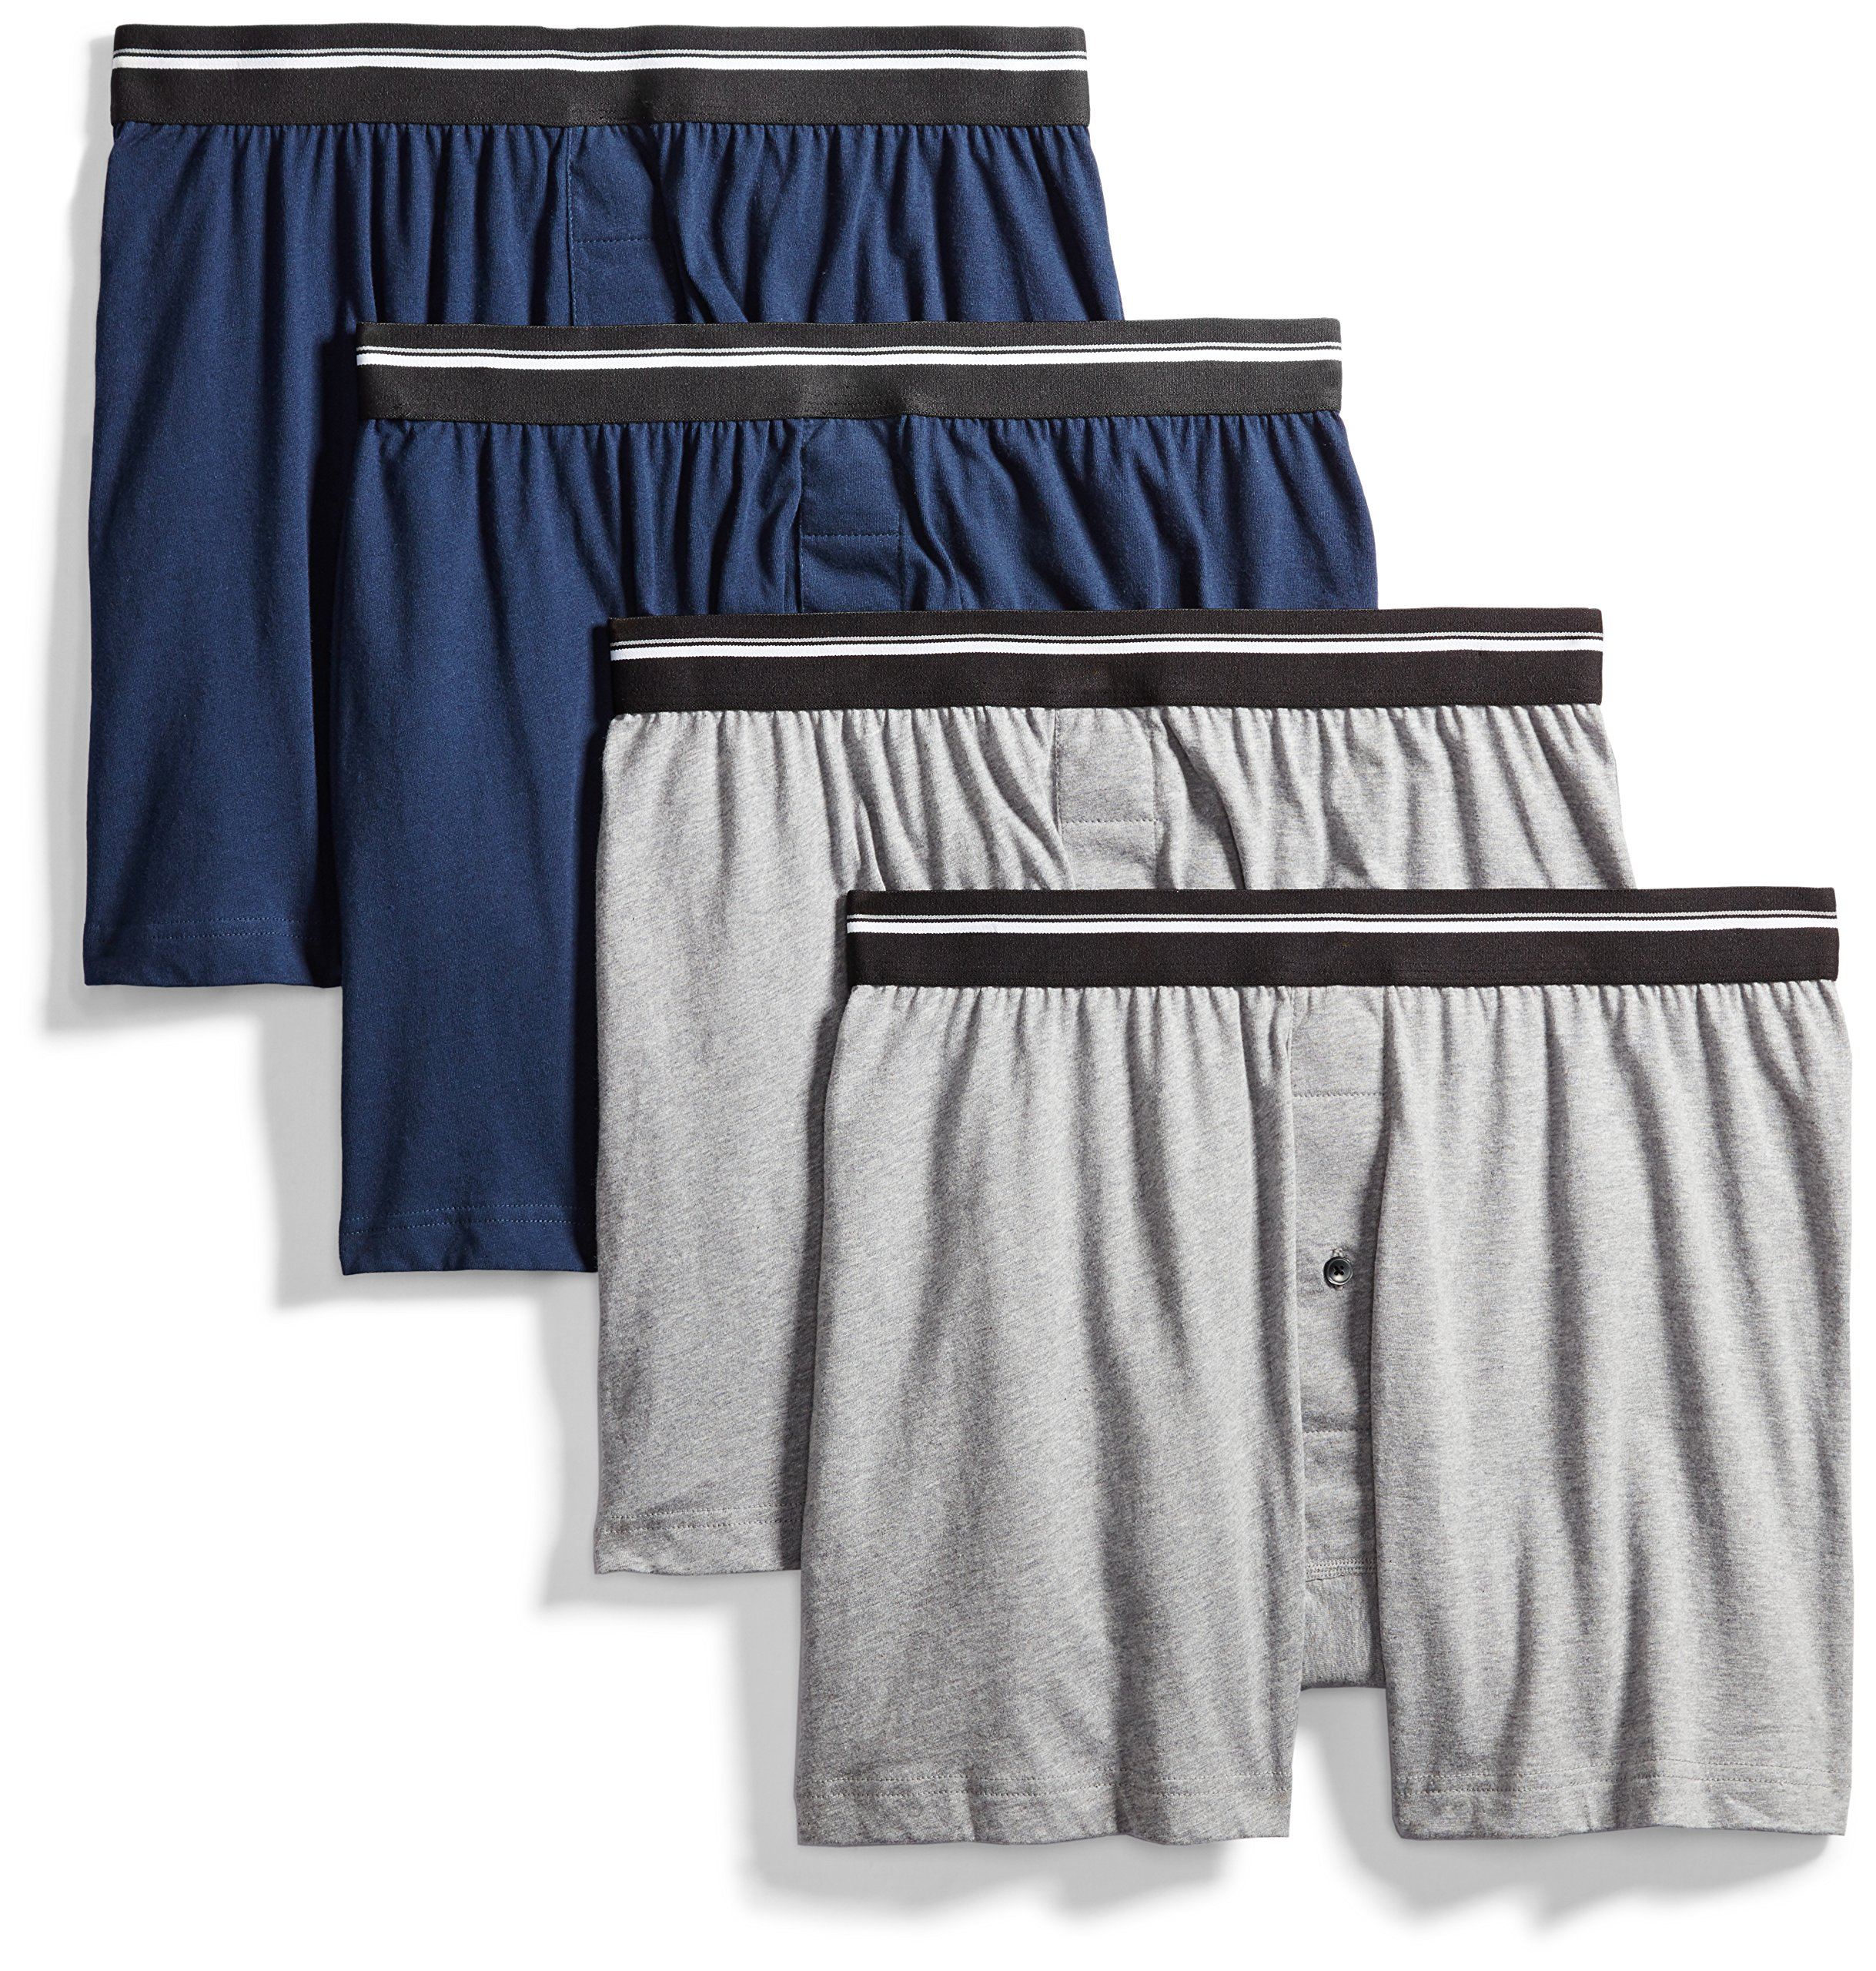 Goodthreads Men's 4-Pack Tag-Free Knit Boxers, Heather Grey/Dark Navy, Medium